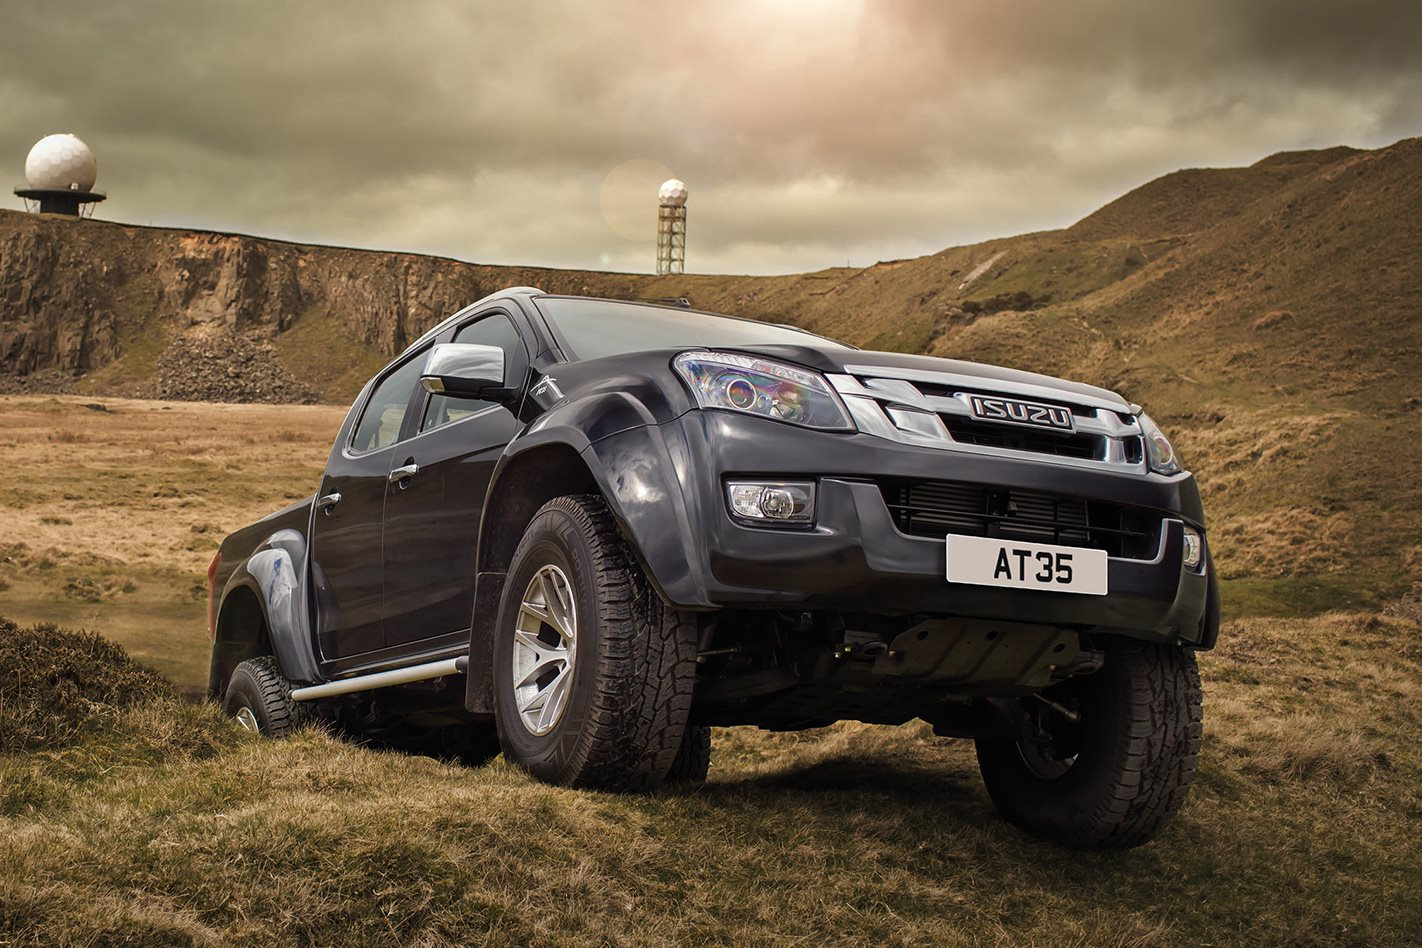 isuzu d max factory backed on 35s 4x4 australia. Black Bedroom Furniture Sets. Home Design Ideas